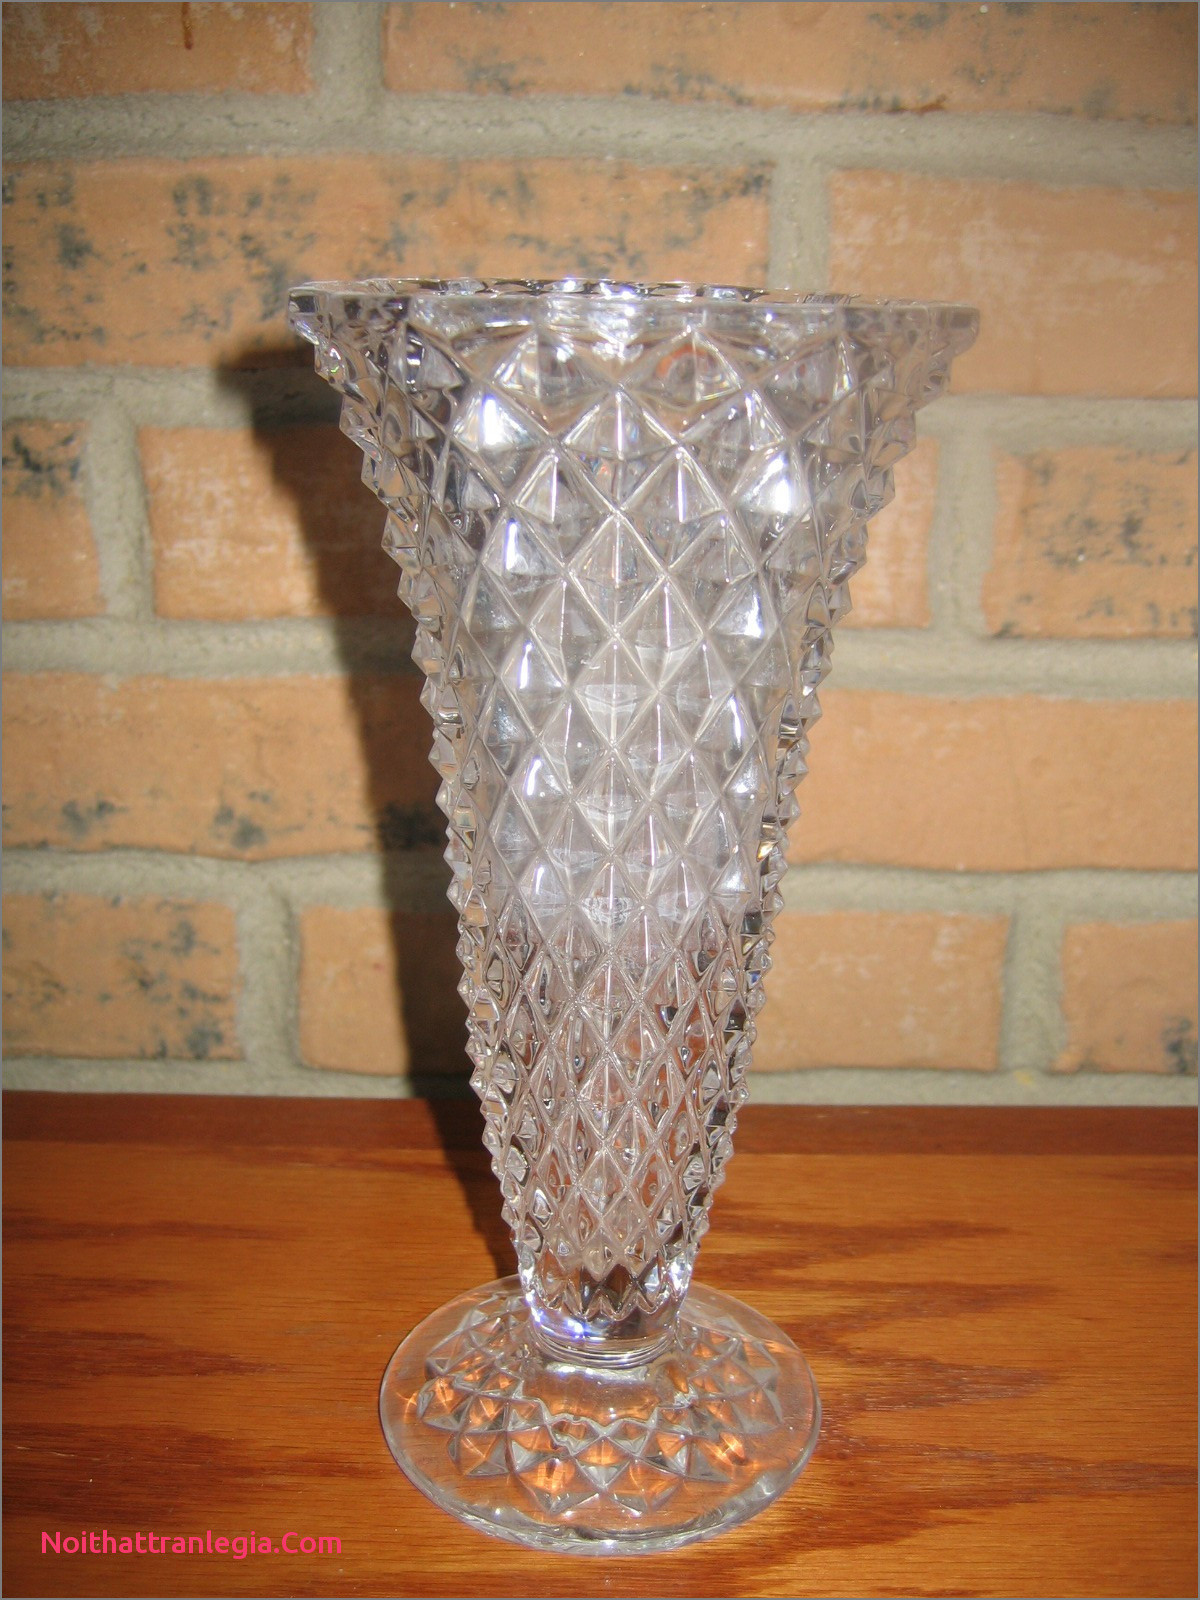 engraved glass vase of 20 cut glass antique vase noithattranlegia vases design throughout glass vase decoration ideas vases antique crystal 2 gorgeous edwardian cut lead glass